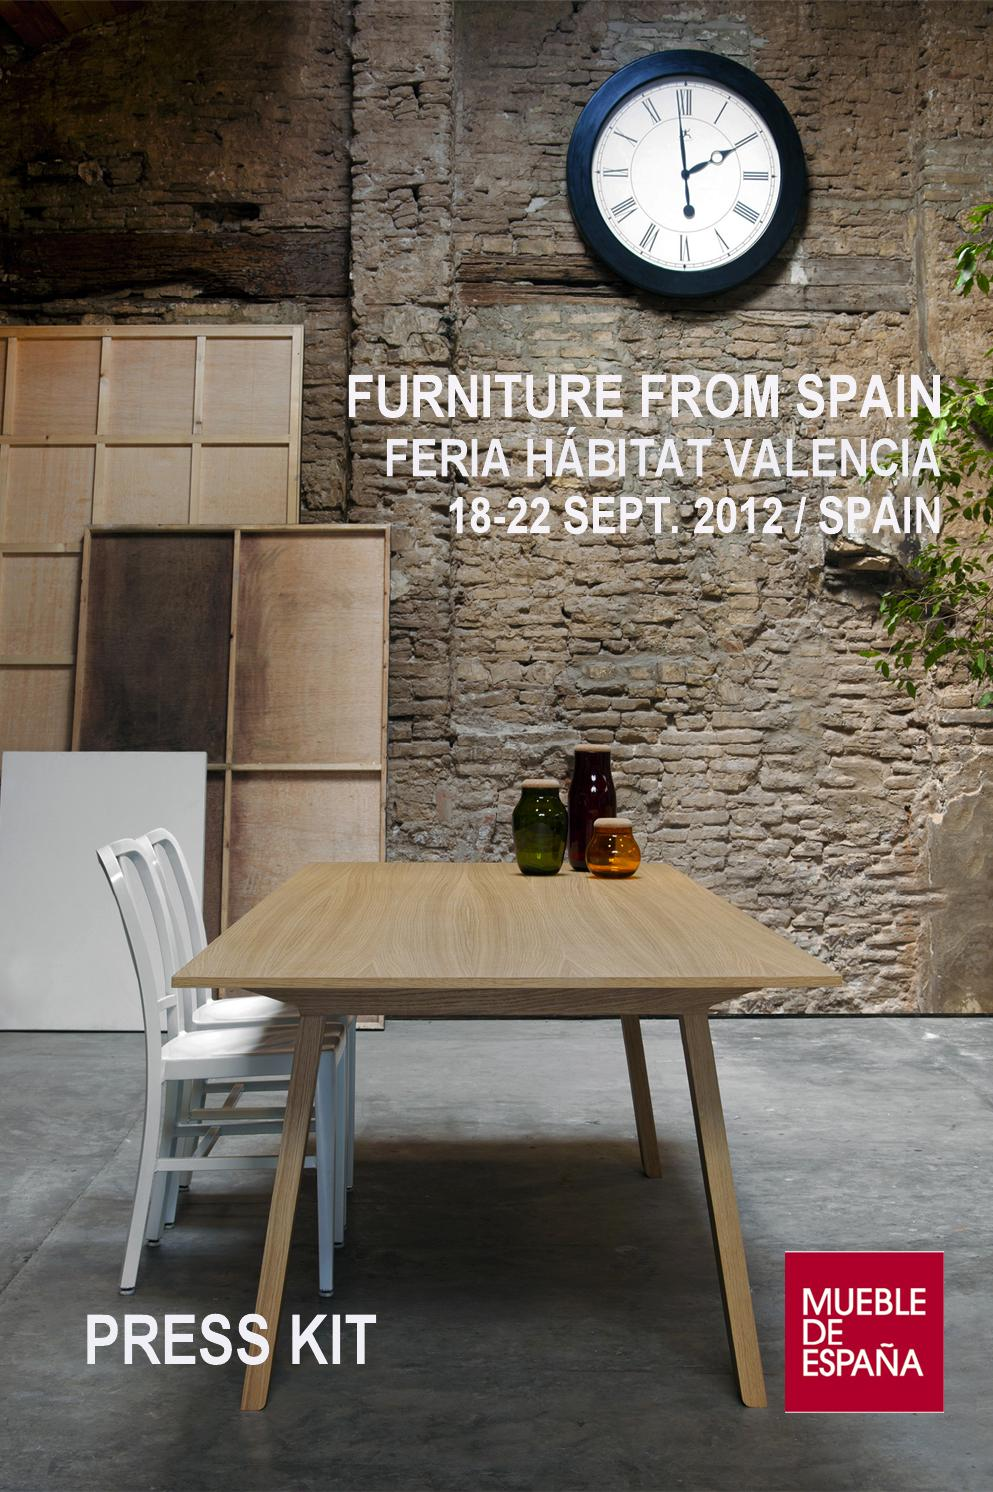 Mueble de espa a at feria h bitat valencia 2012 by furniture from spain issuu - Habitat muebles espana ...